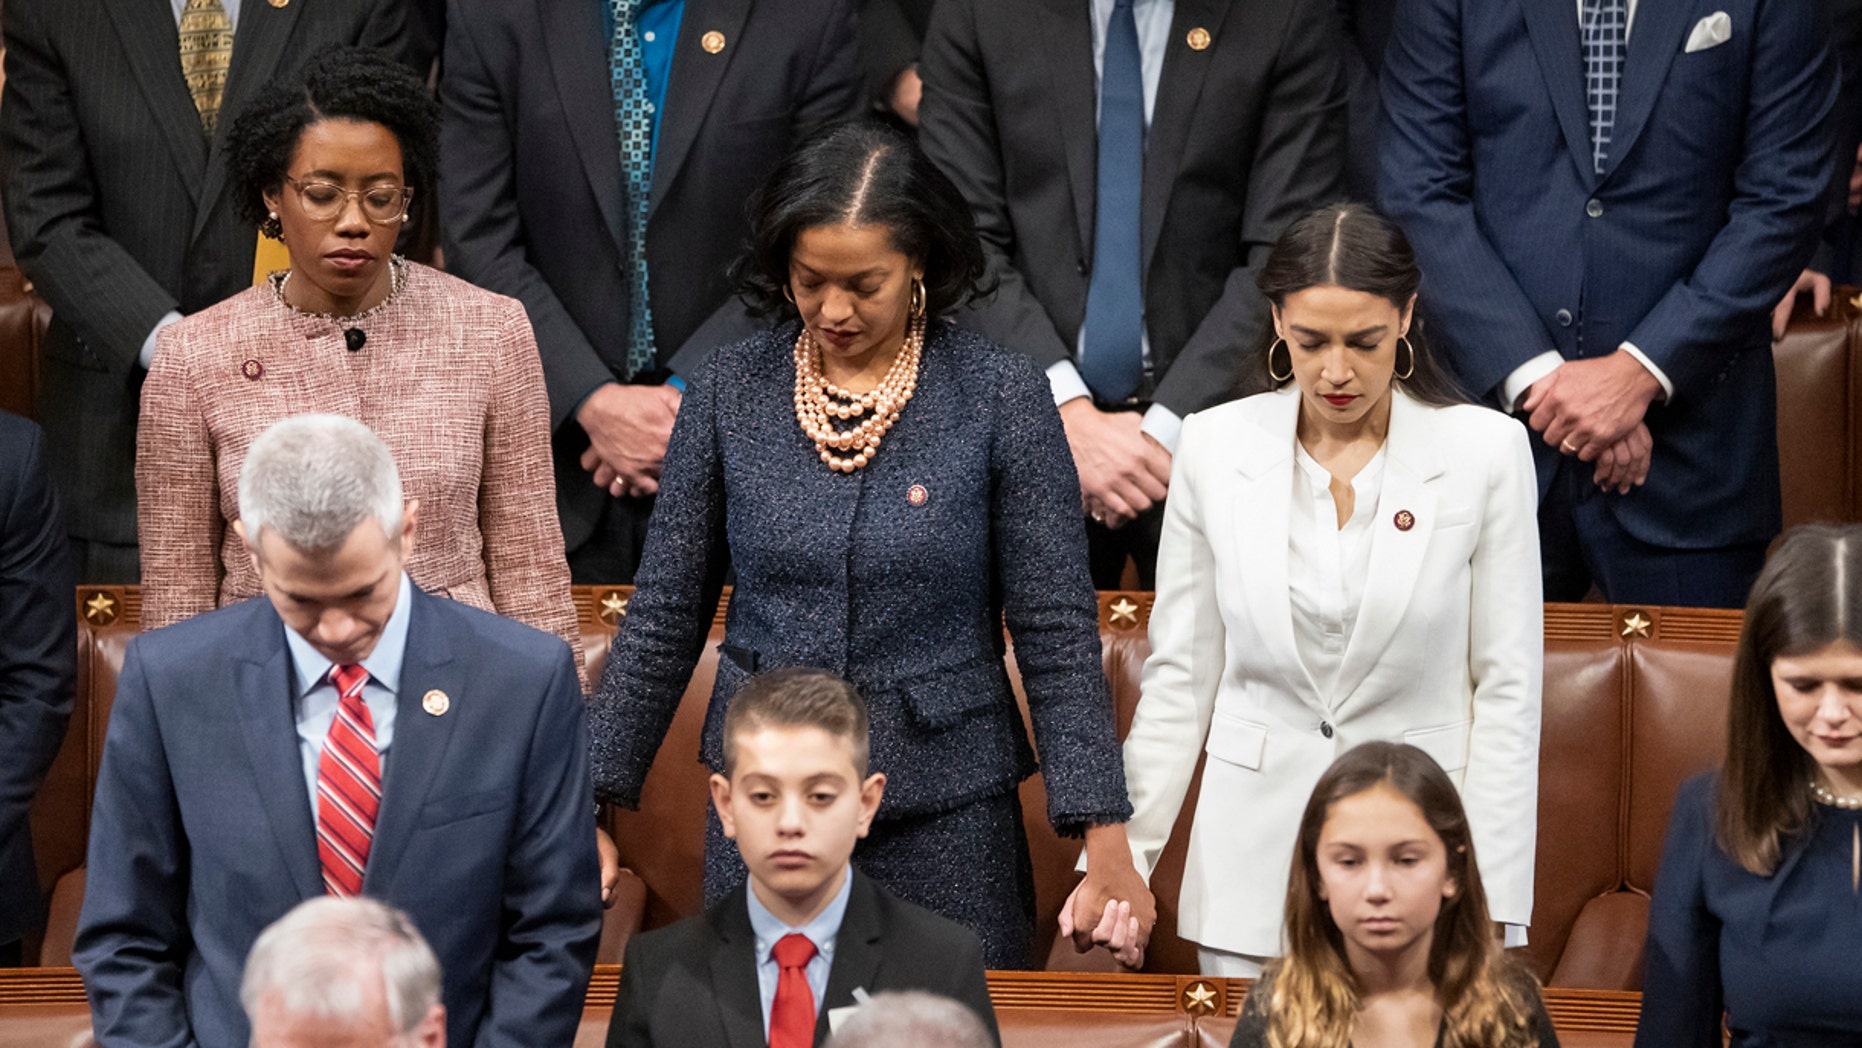 From left in center row, Rep. Lauren Underwood, D-Ill., Rep. Jahana Hayes, D-Conn., and Rep. Alexandria Ocasio-Cortez, D-N.Y, hold hands during an opening prayer as the House of Representatives assembles for the first day of the 116th Congress at the Capitol in Washington, Thursday, Jan. 3, 2019. (AP Photo/J. Scott Applewhite)